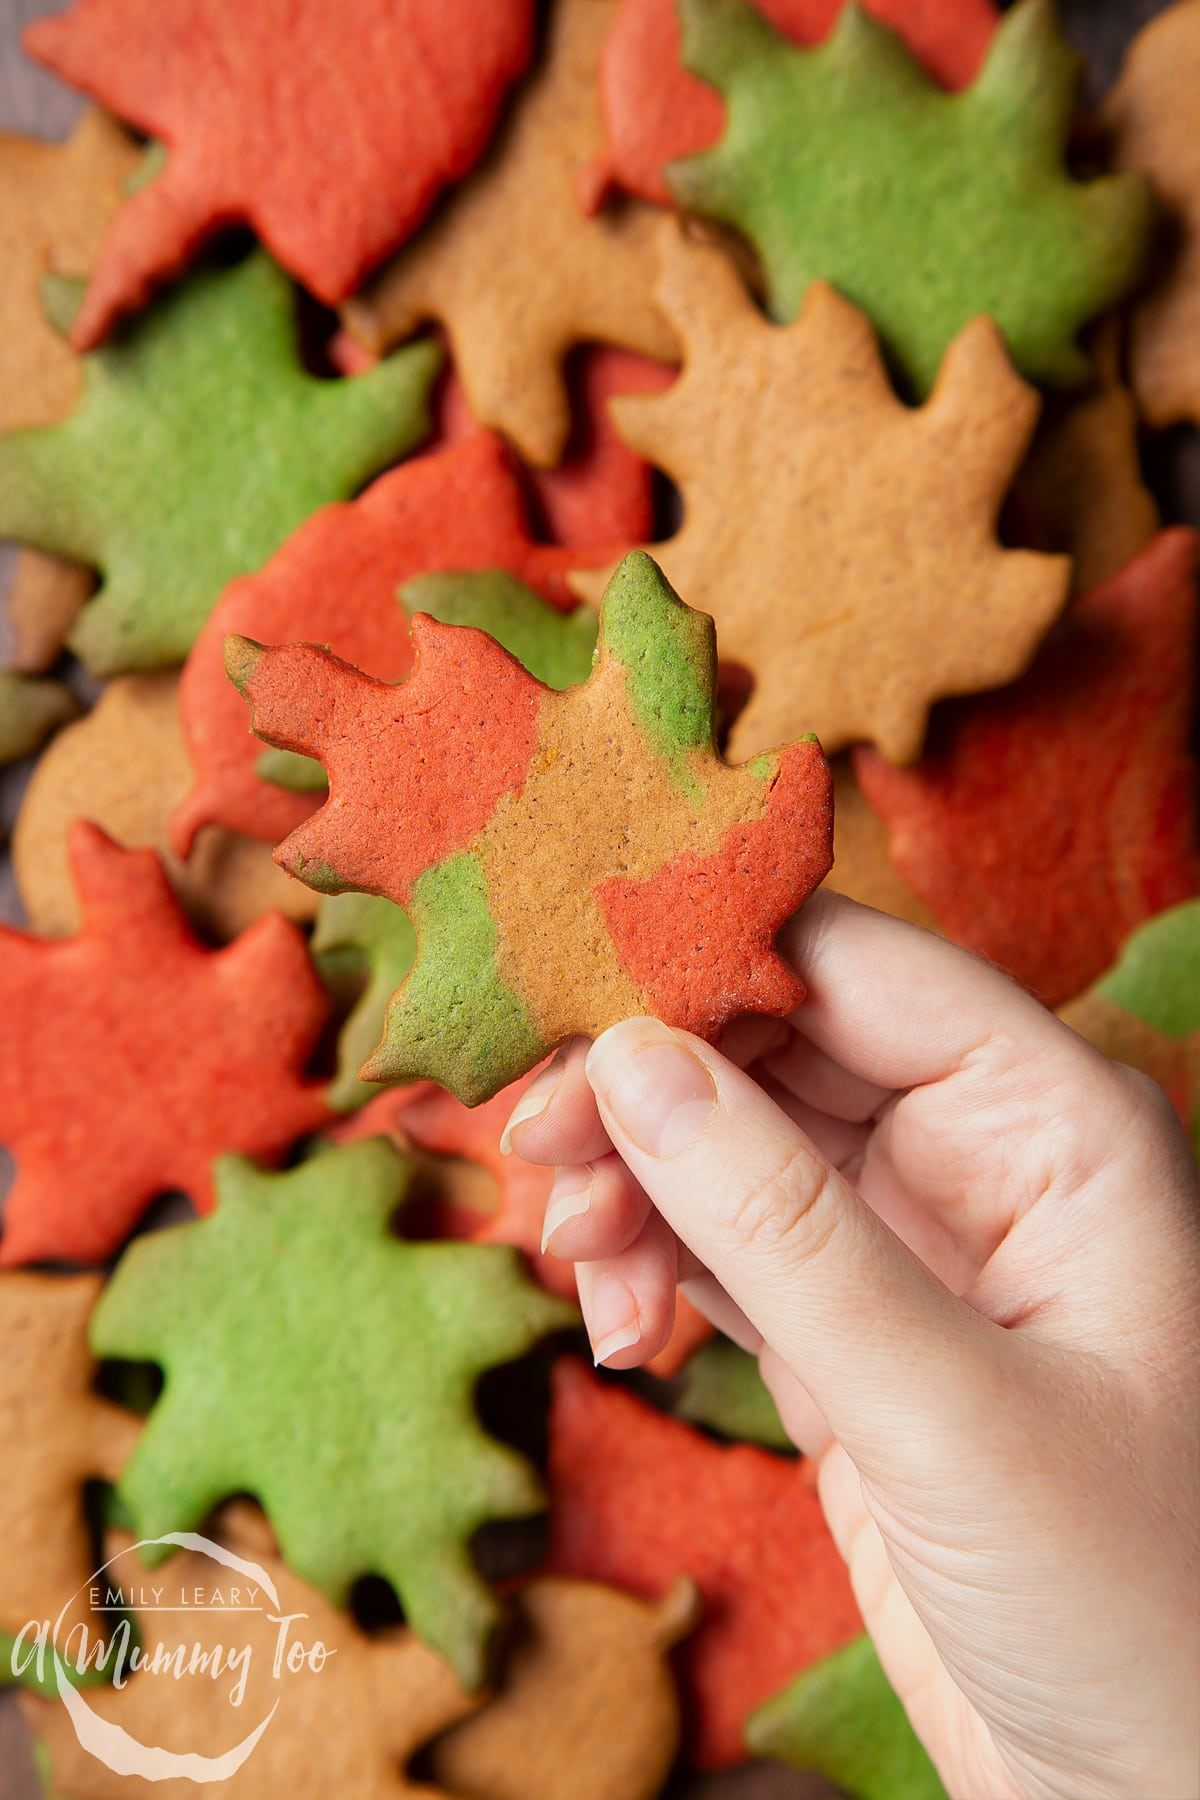 A pile of colourful red, green and brown autumn cookies cut into the shapes of autumn leaves. A hand holds a multicoloured one.